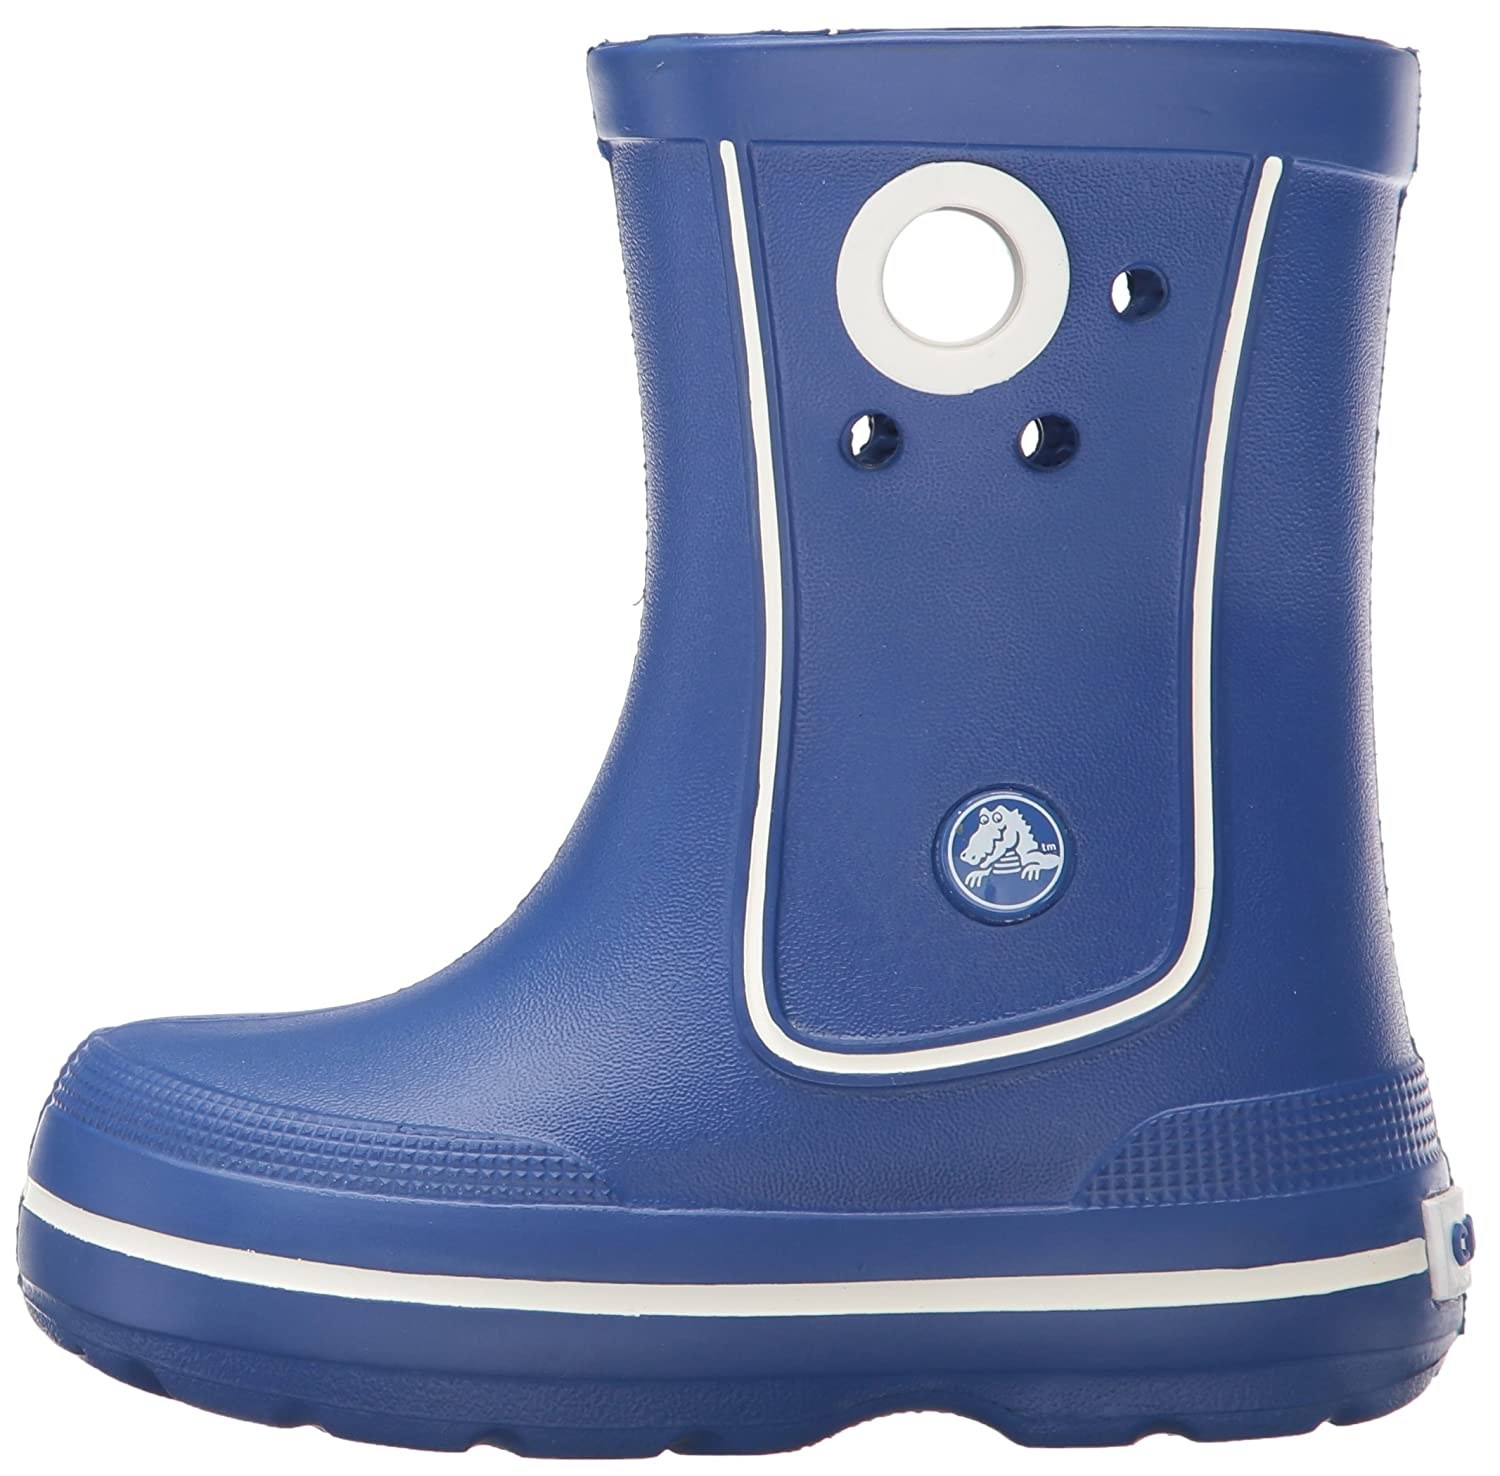 3452c4446 crocs Crocband Jaunt Girls Boot in Blue  Buy Online at Low Prices in India  - Amazon.in